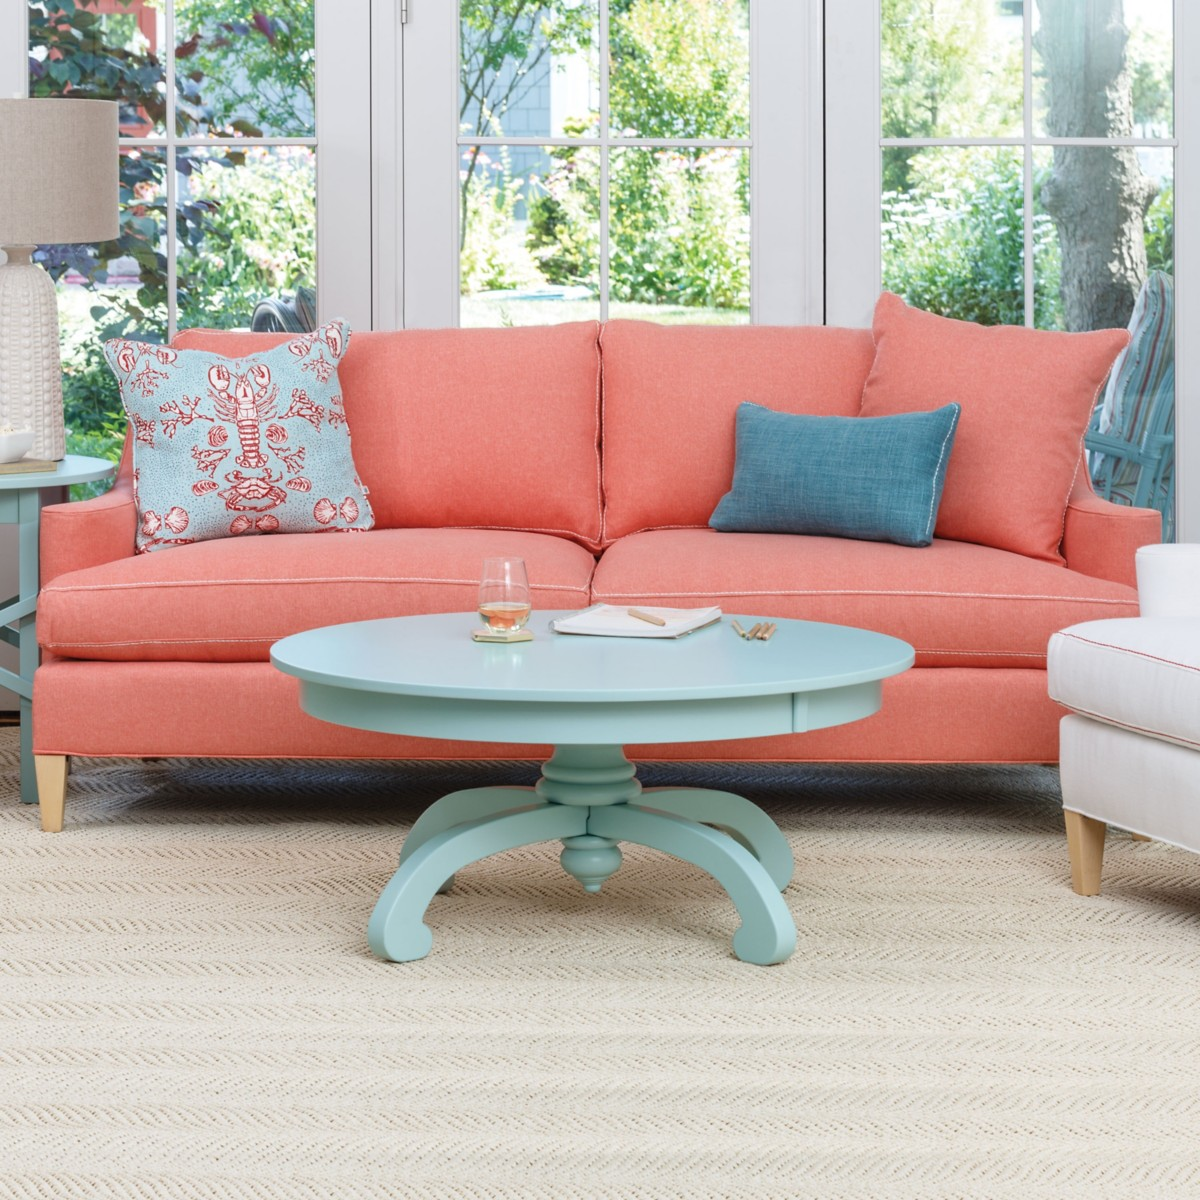 Incroyable Hutton Sofa With French Seam Rope Stitch